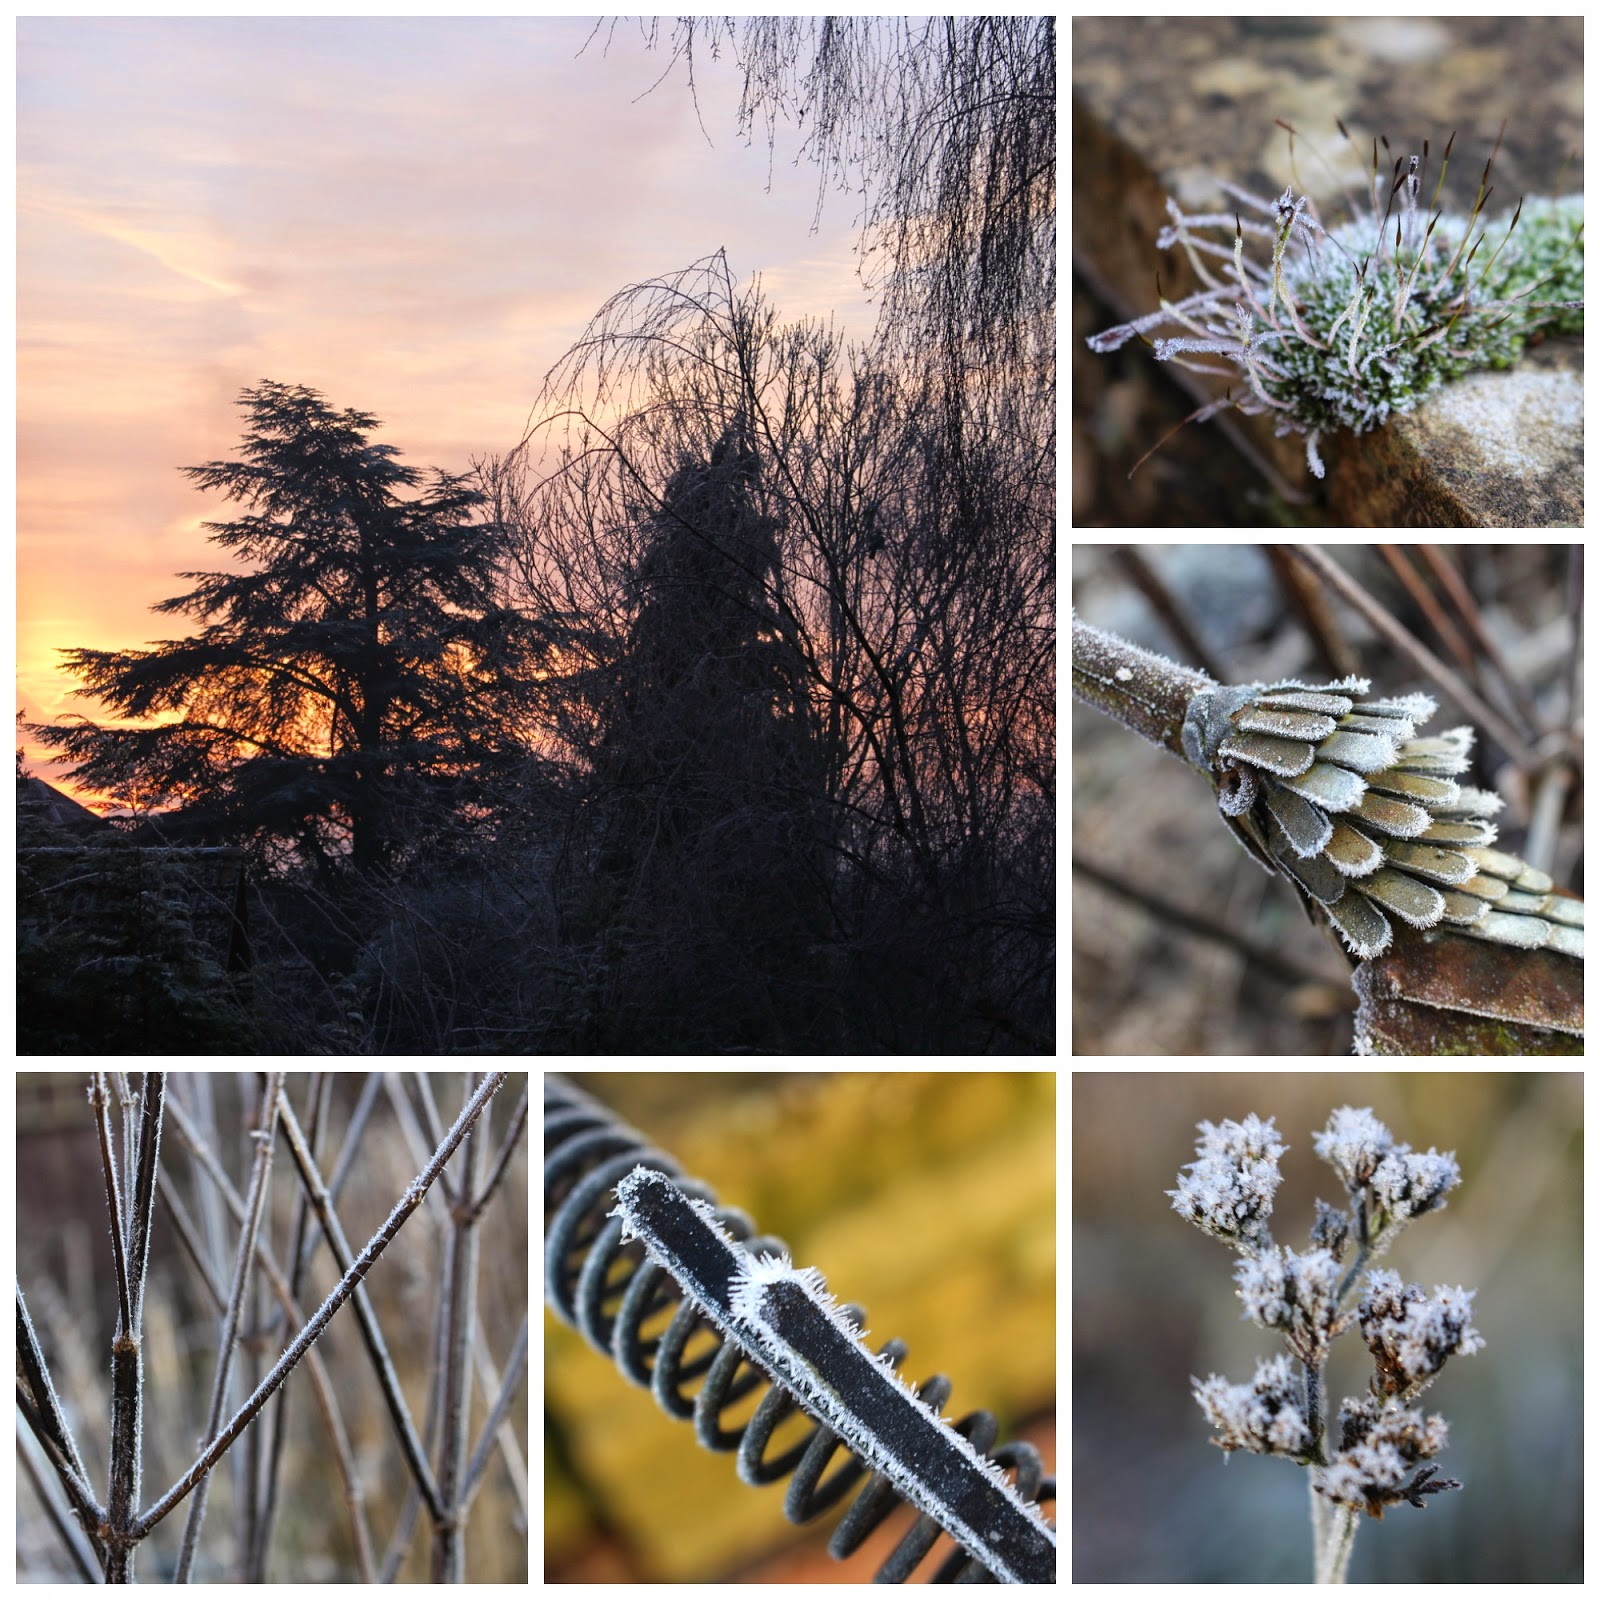 A second collage of hoar frost pictures from my garden